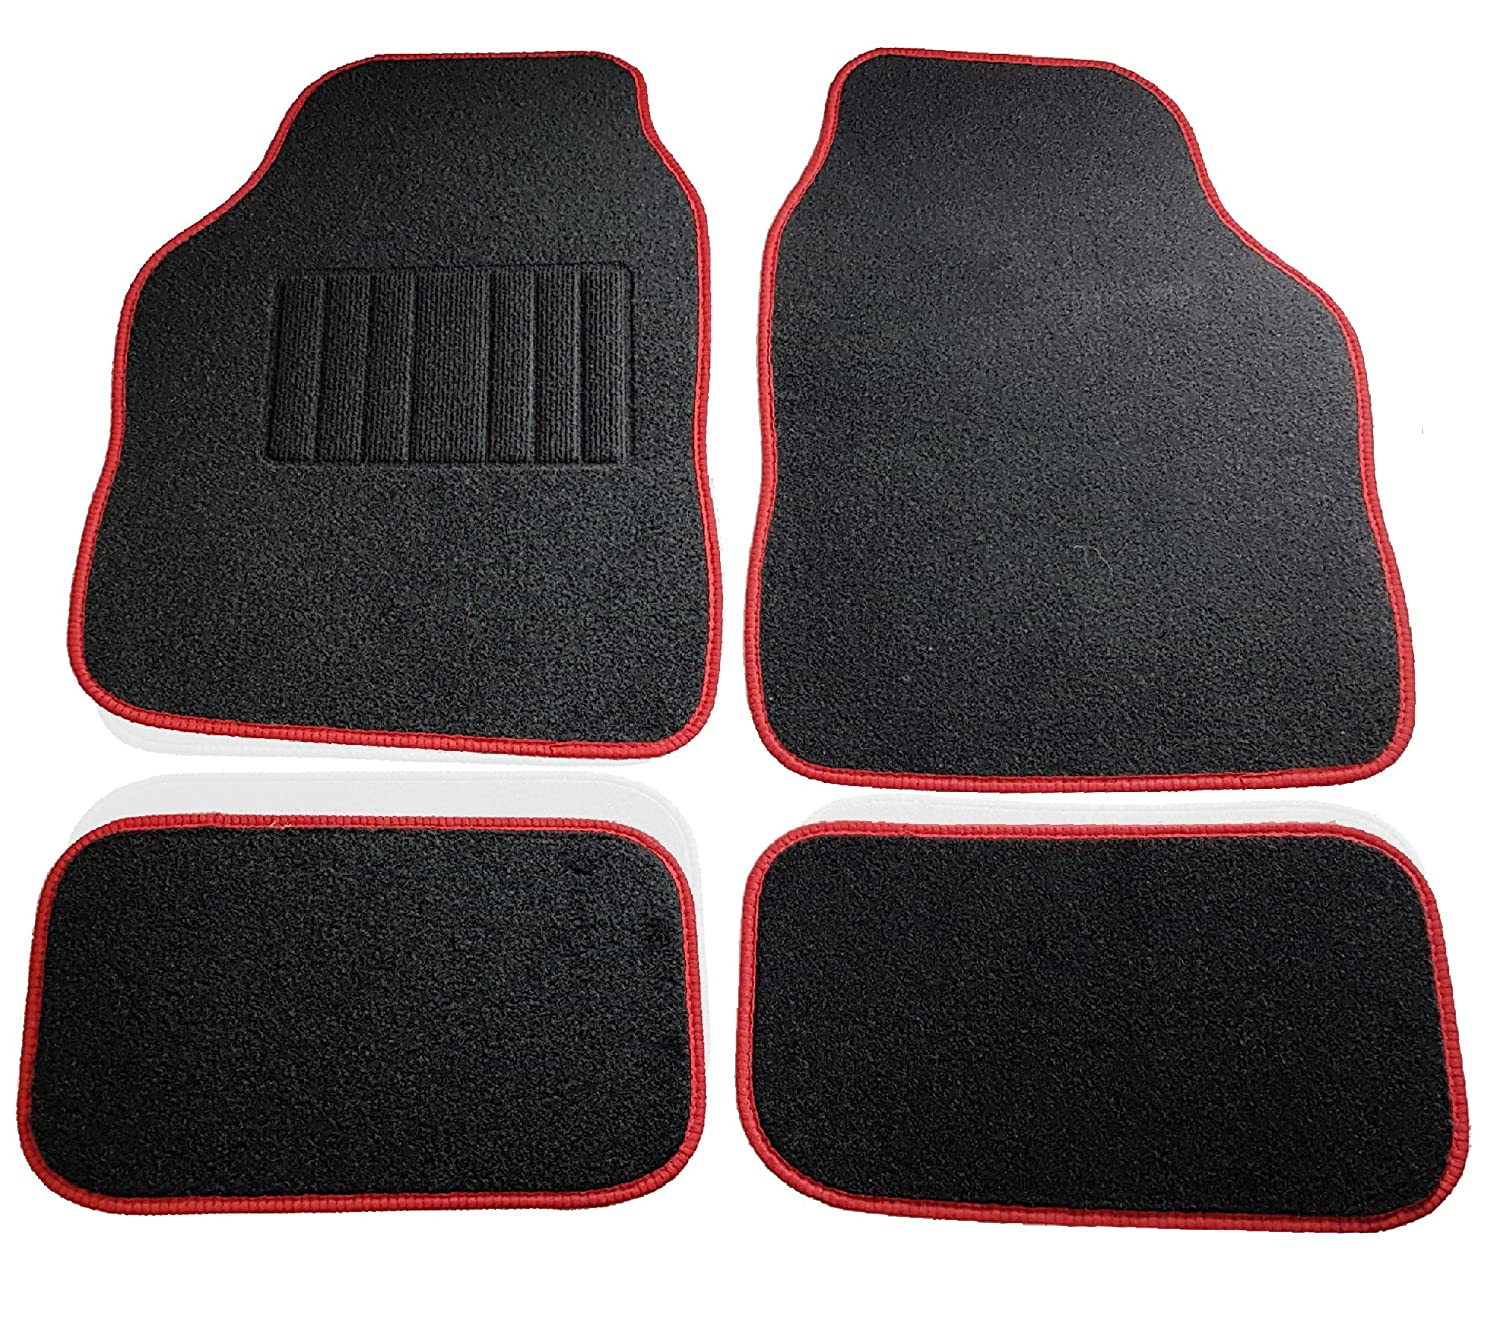 Safe Travel 27501 Universal Car Mats, Right Hand Drive (RHD), Carpet Heel, Grey Binding SafeTravel